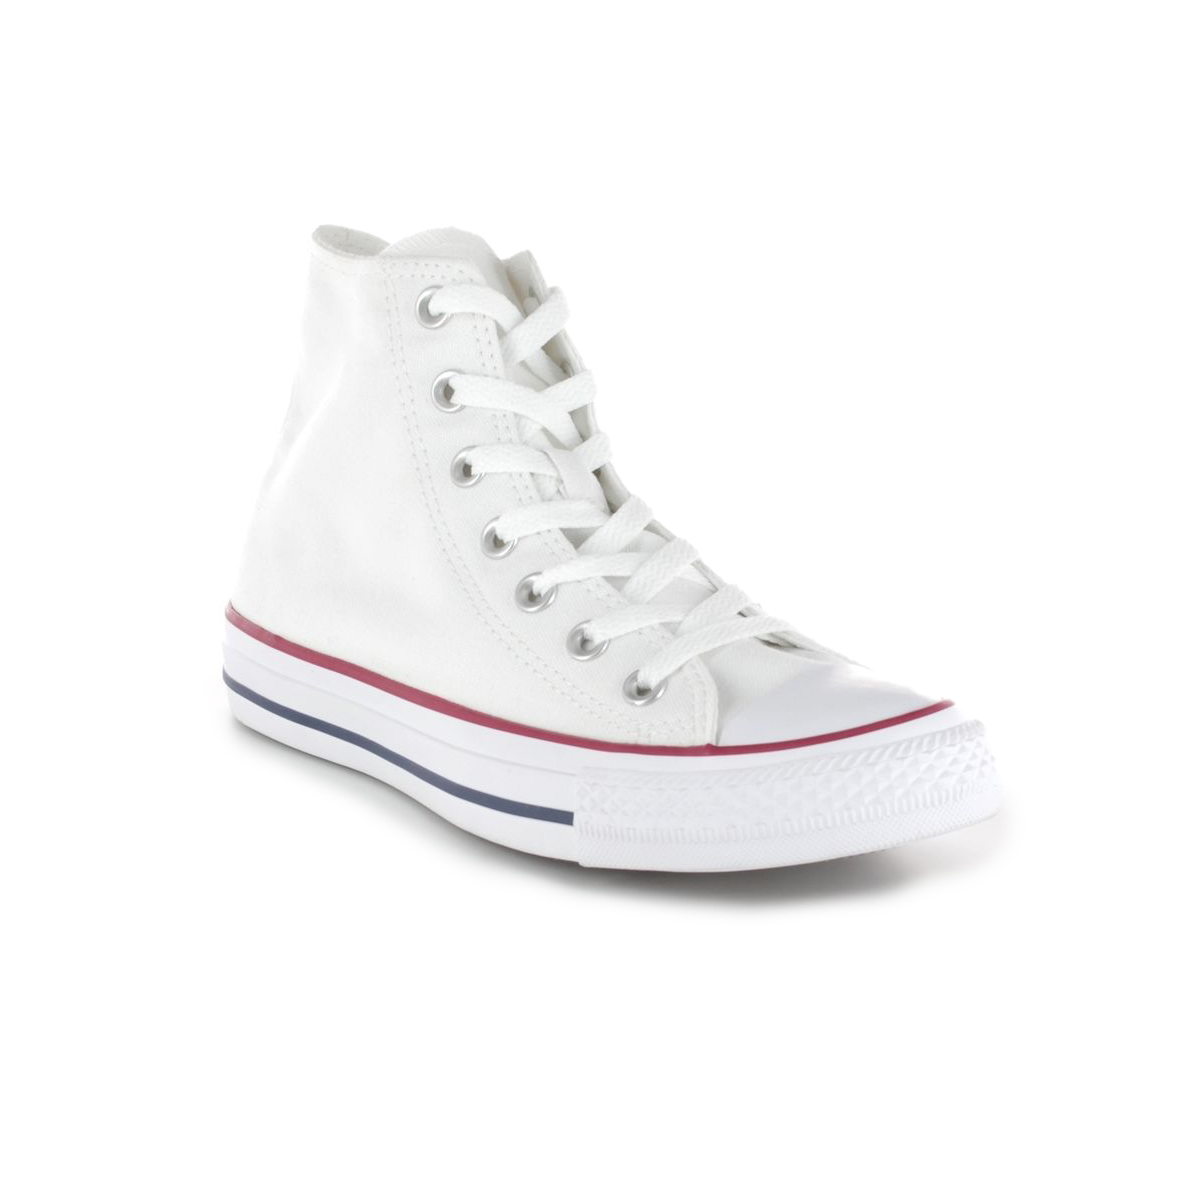 Sneakers  WEDGE HIGH TOP SNEAKERS TRAINERS COLOURS !!!Black Moro white)!<++++++